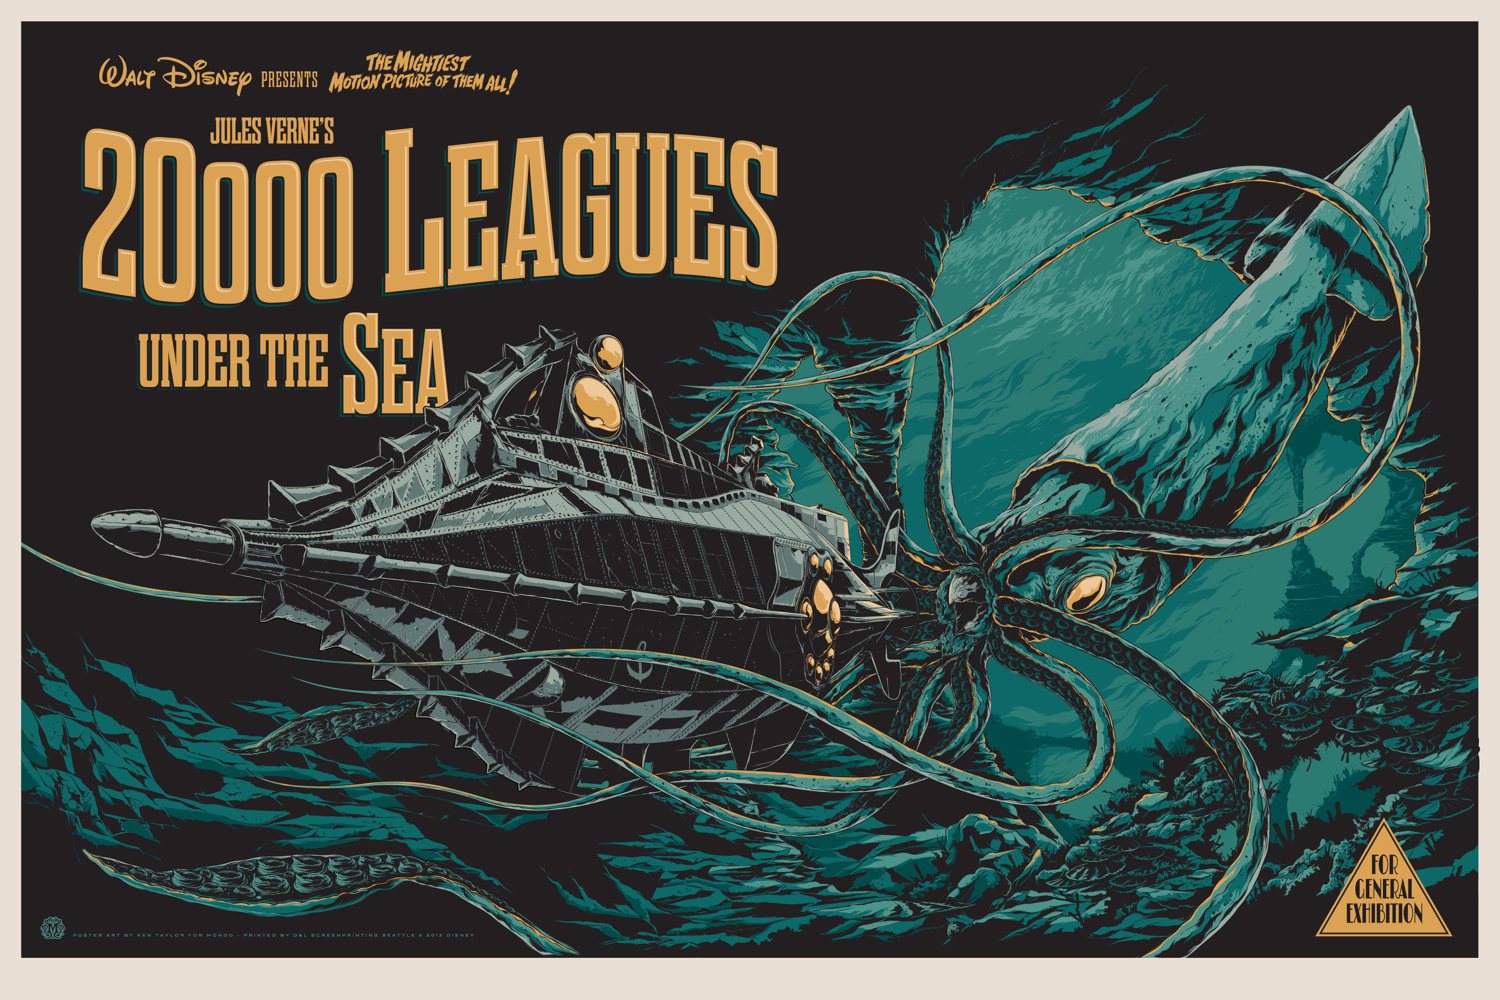 HQ 20,000 Leagues Under The Sea Wallpapers | File 1515.83Kb